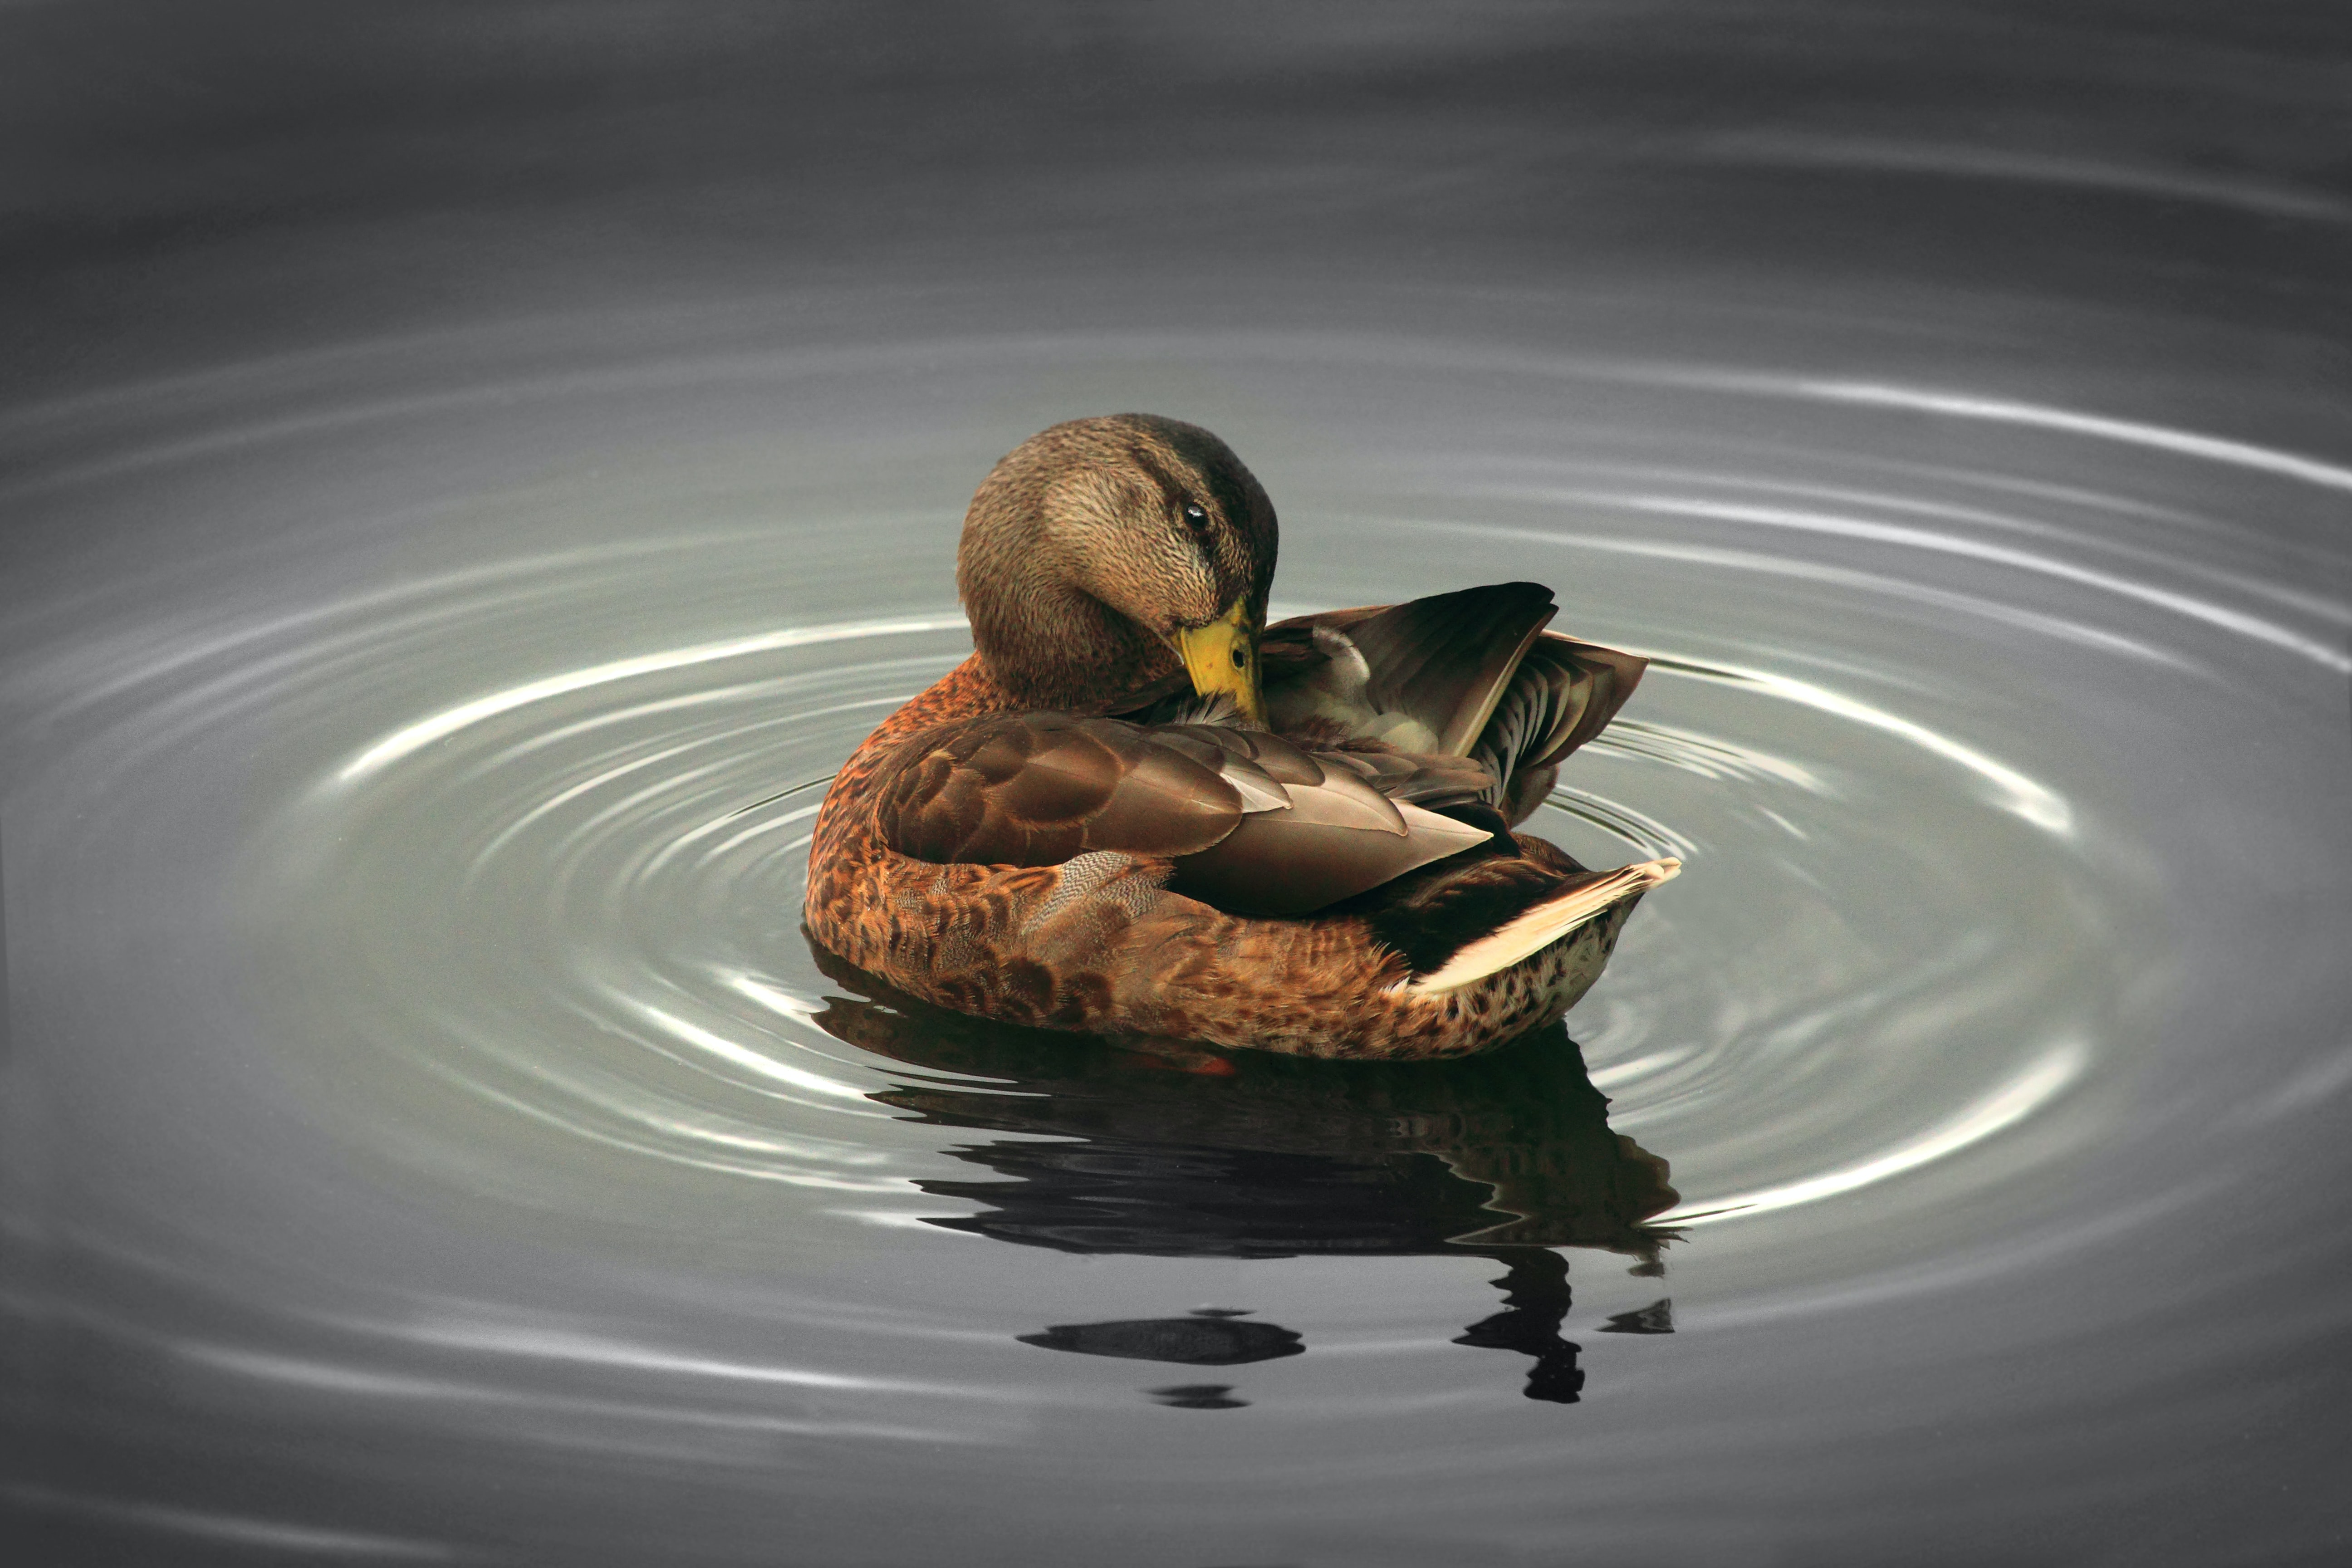 A duck picking at its wing while causing a ripple in the pond